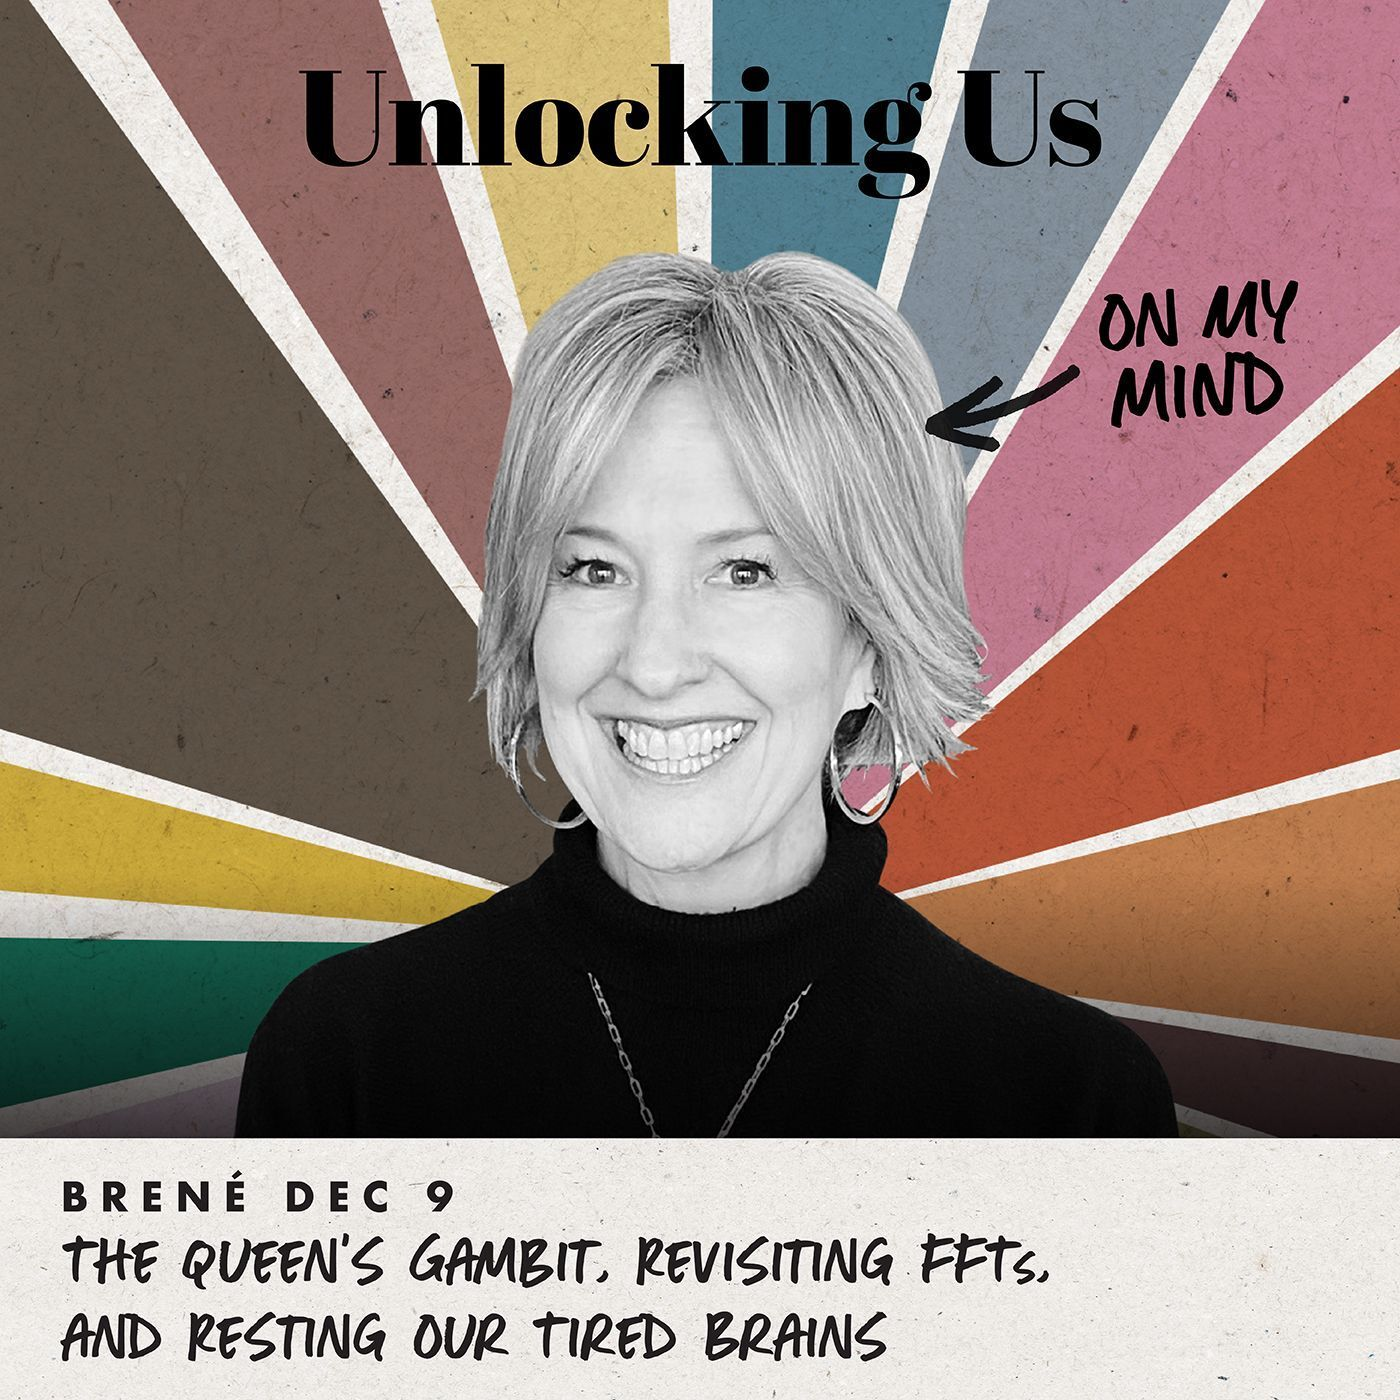 Brené on The Queen's Gambit, Revisiting FFTs, and Resting Our Tired Brains